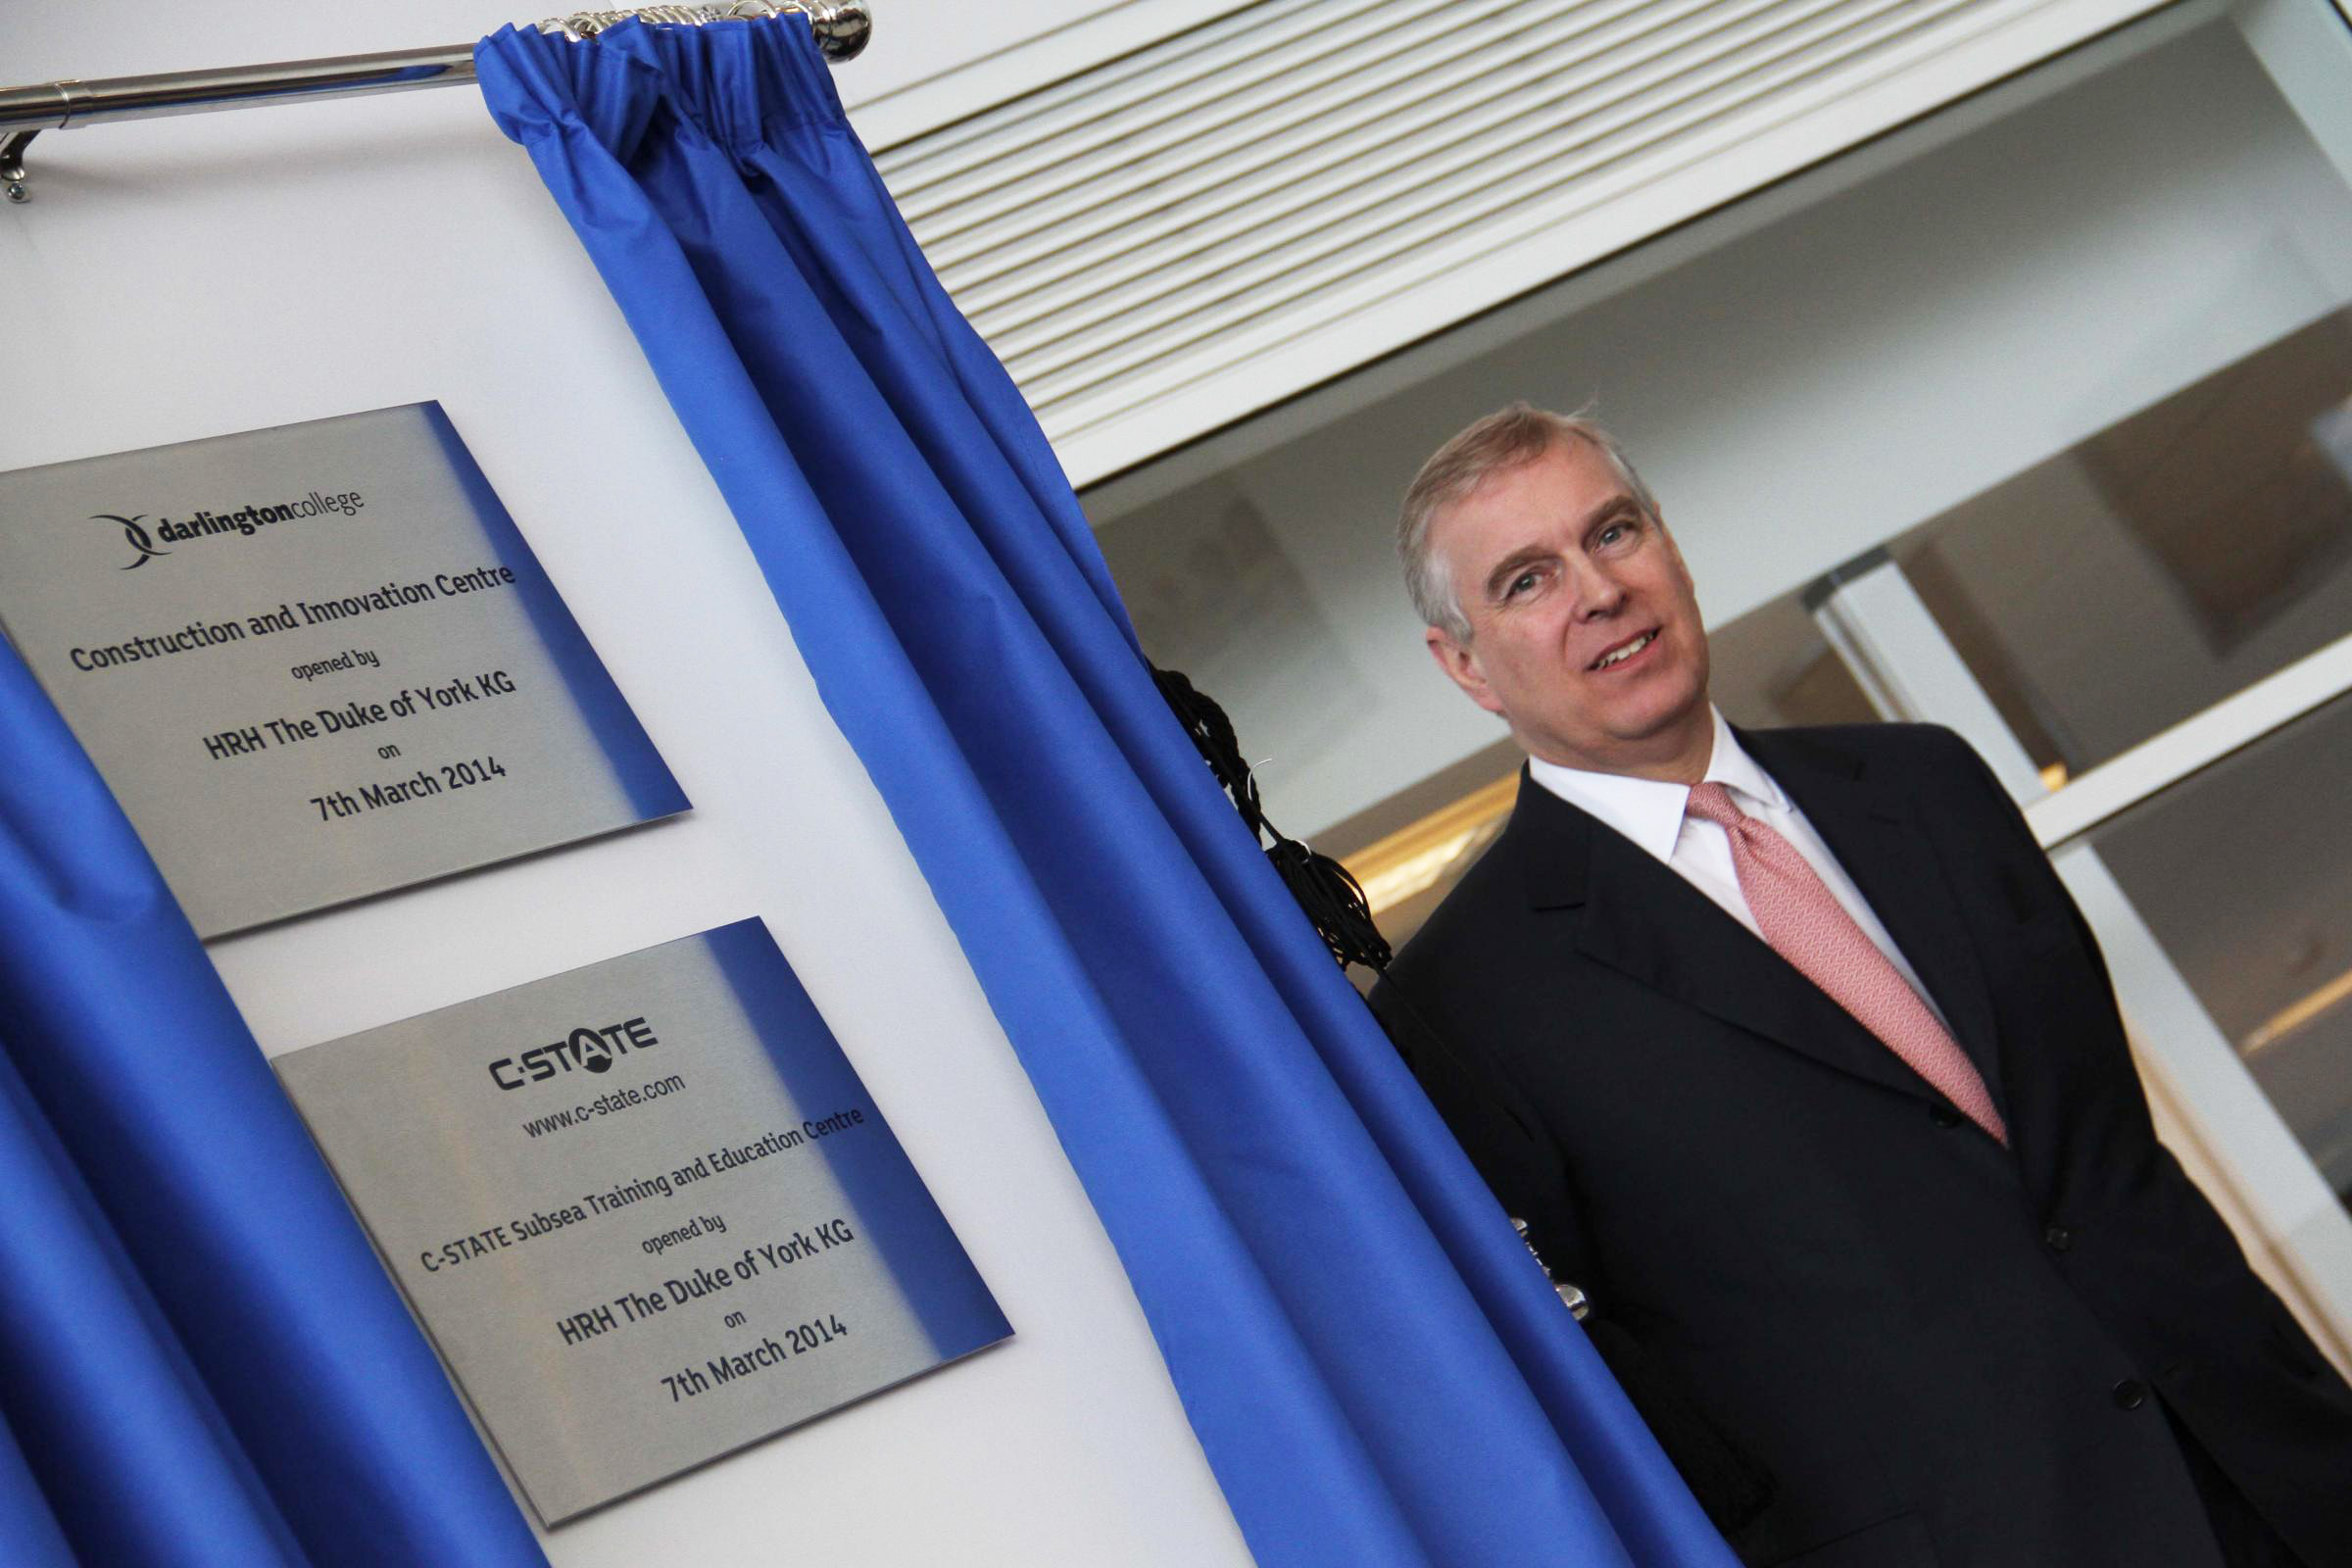 Prince Andrew officially opens the Construction and Innovation Centre and the C-STATE Subsea Training and Education Centre at Darlington College